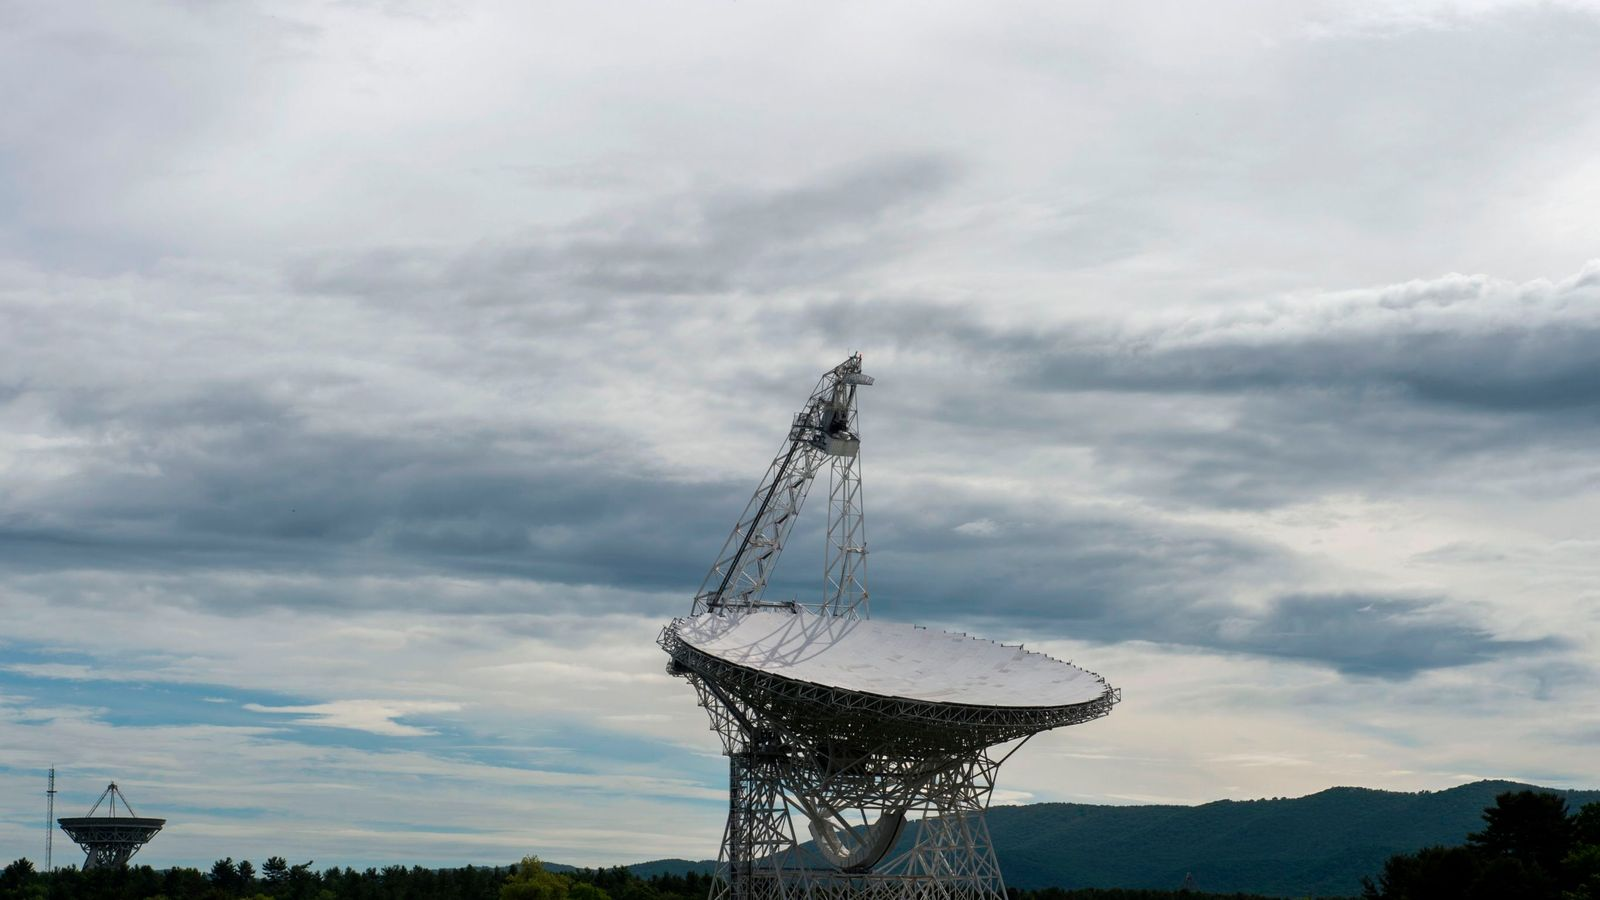 Alien signals spotted from galaxy 3bn light years away